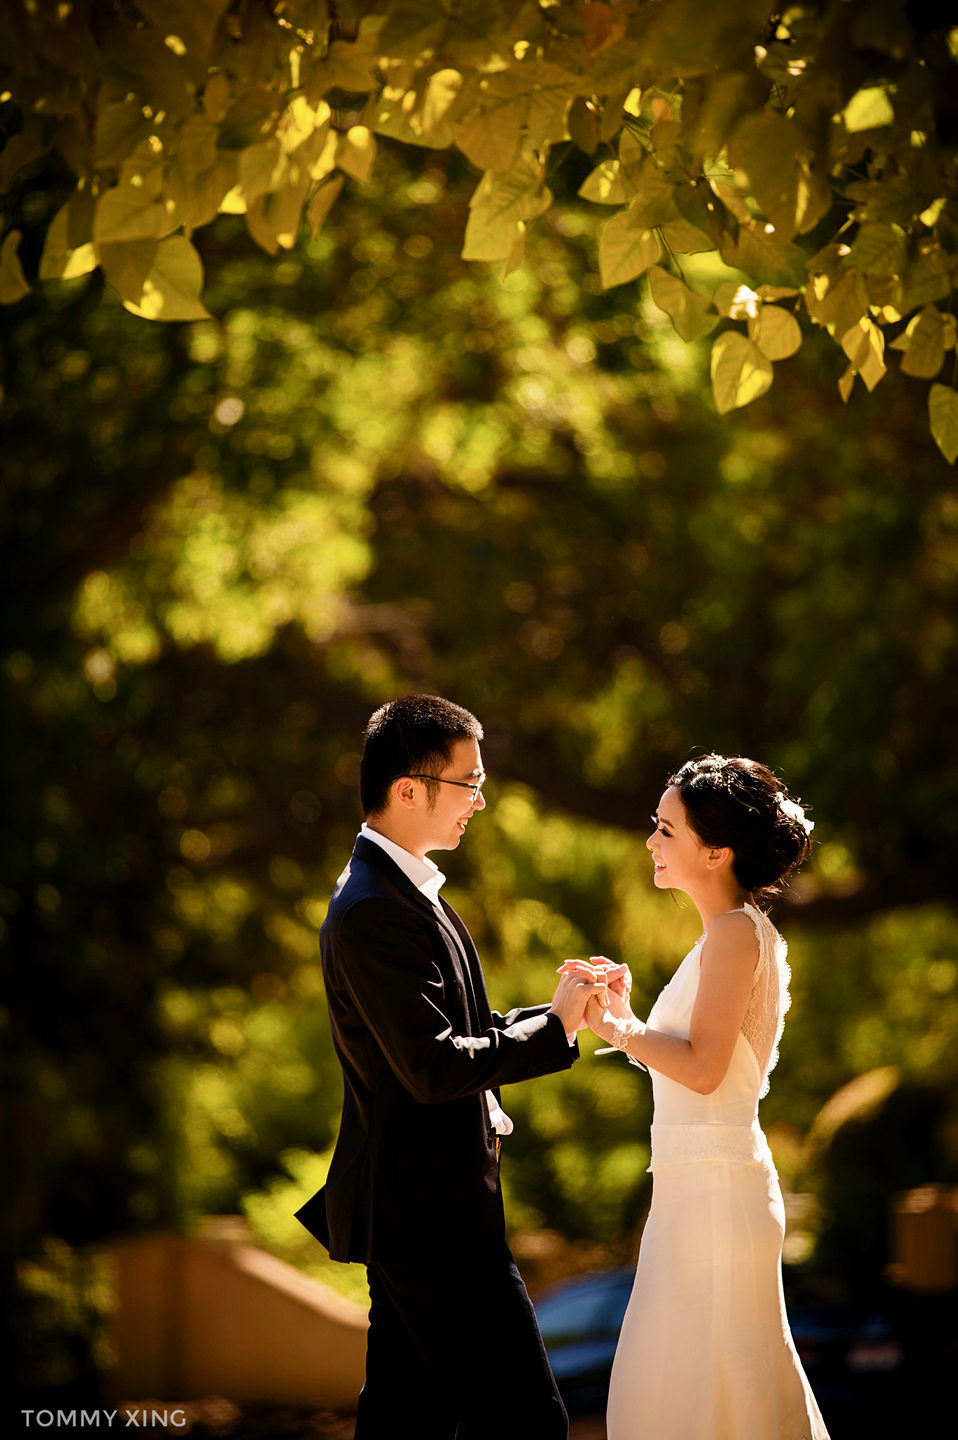 Los Angeles per-wedding 洛杉矶婚纱照 by Tommy Xing Photography 02.jpg